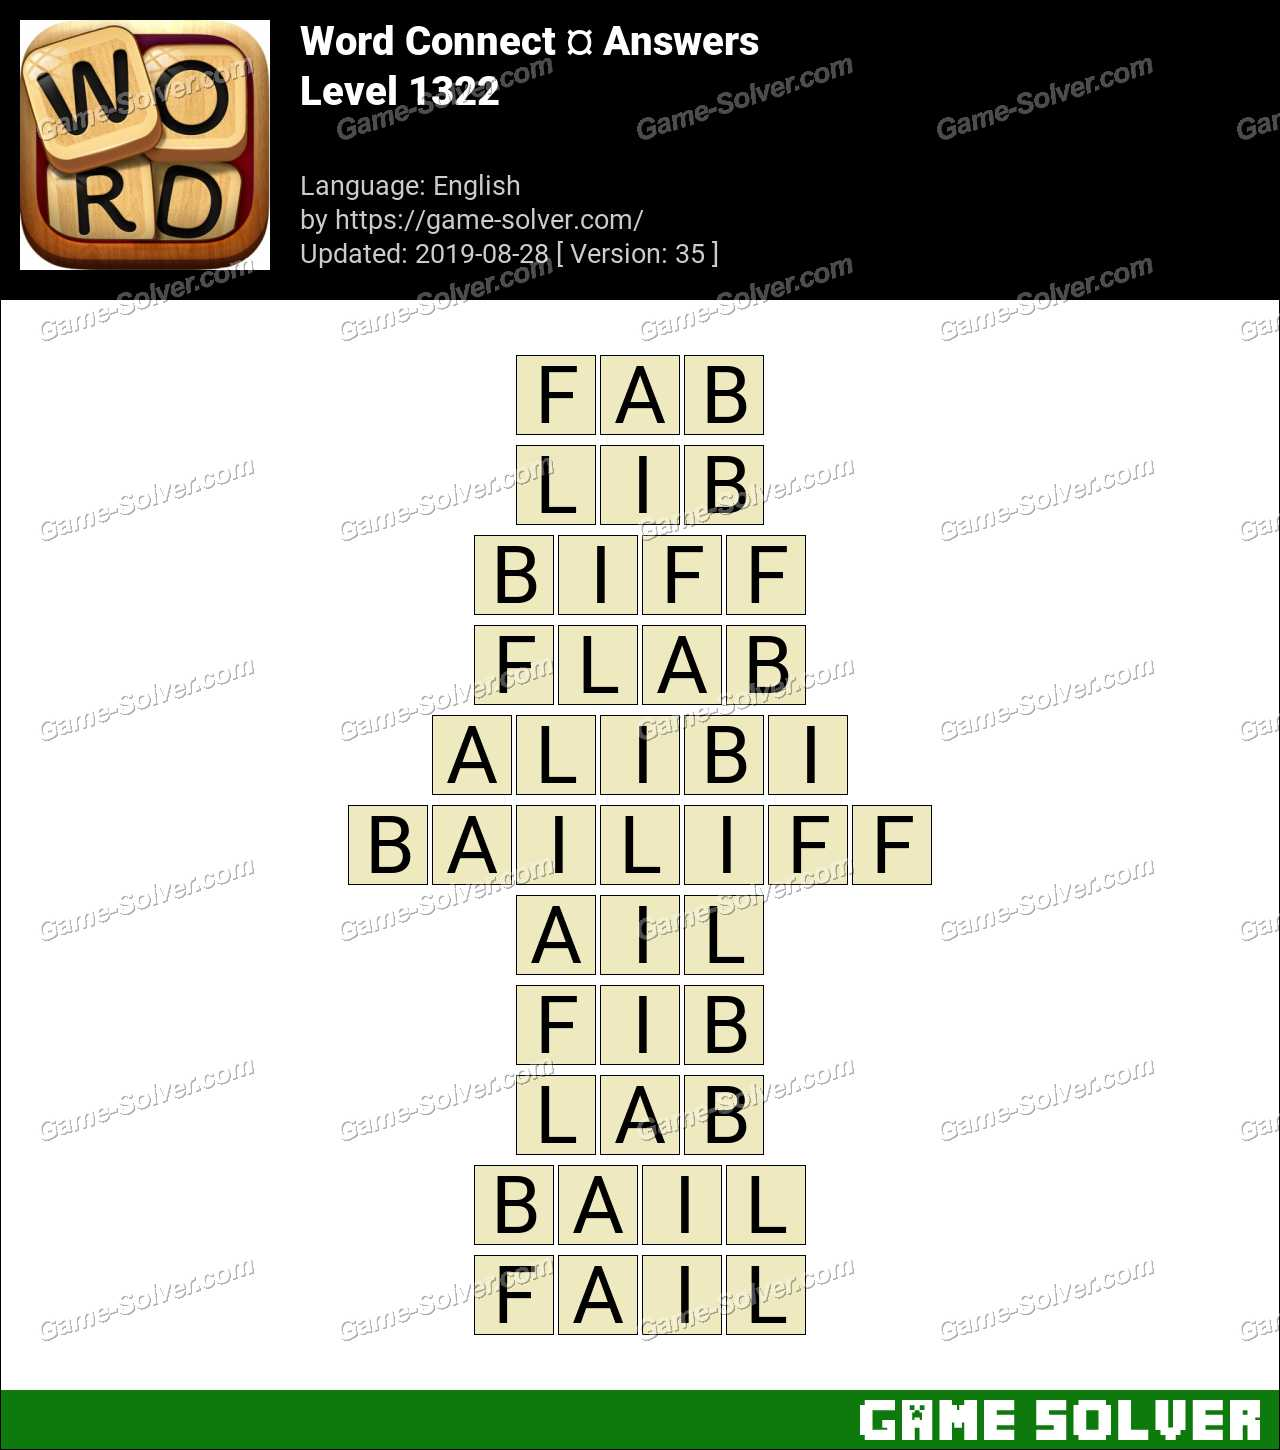 Word Connect Level 1322 Answers